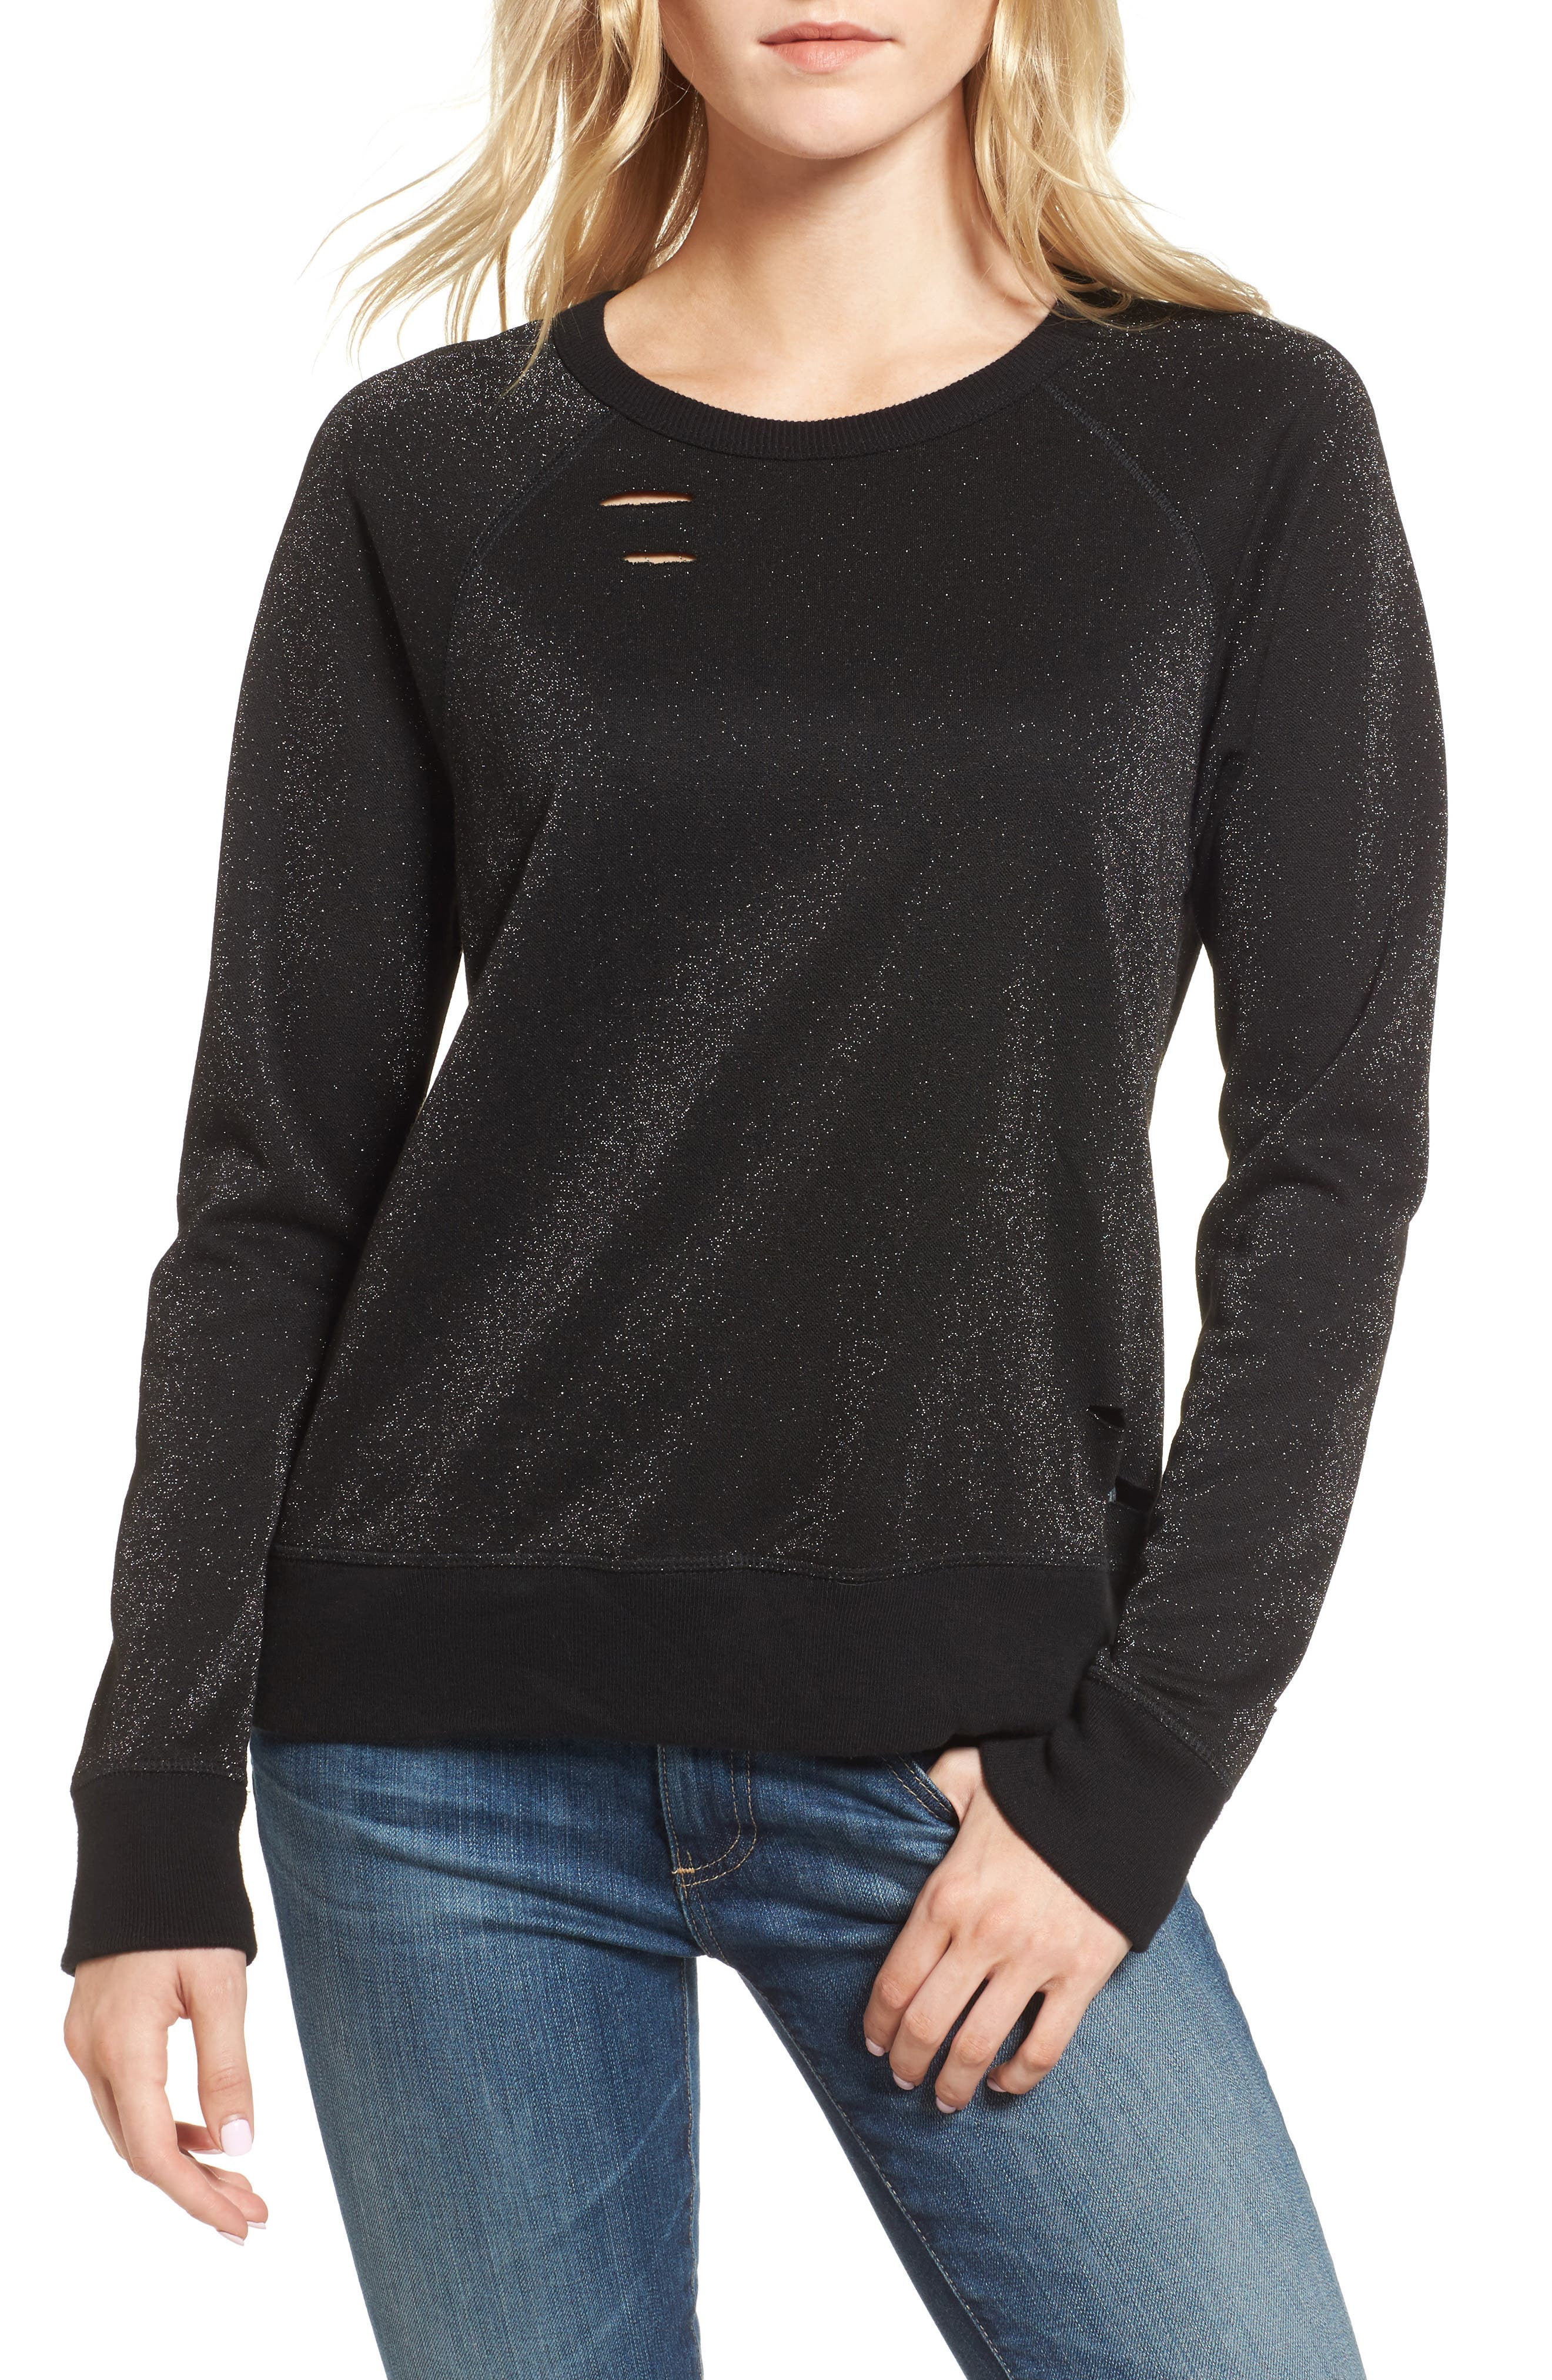 Fuller Sweatshirt,                             Main thumbnail 1, color,                             001